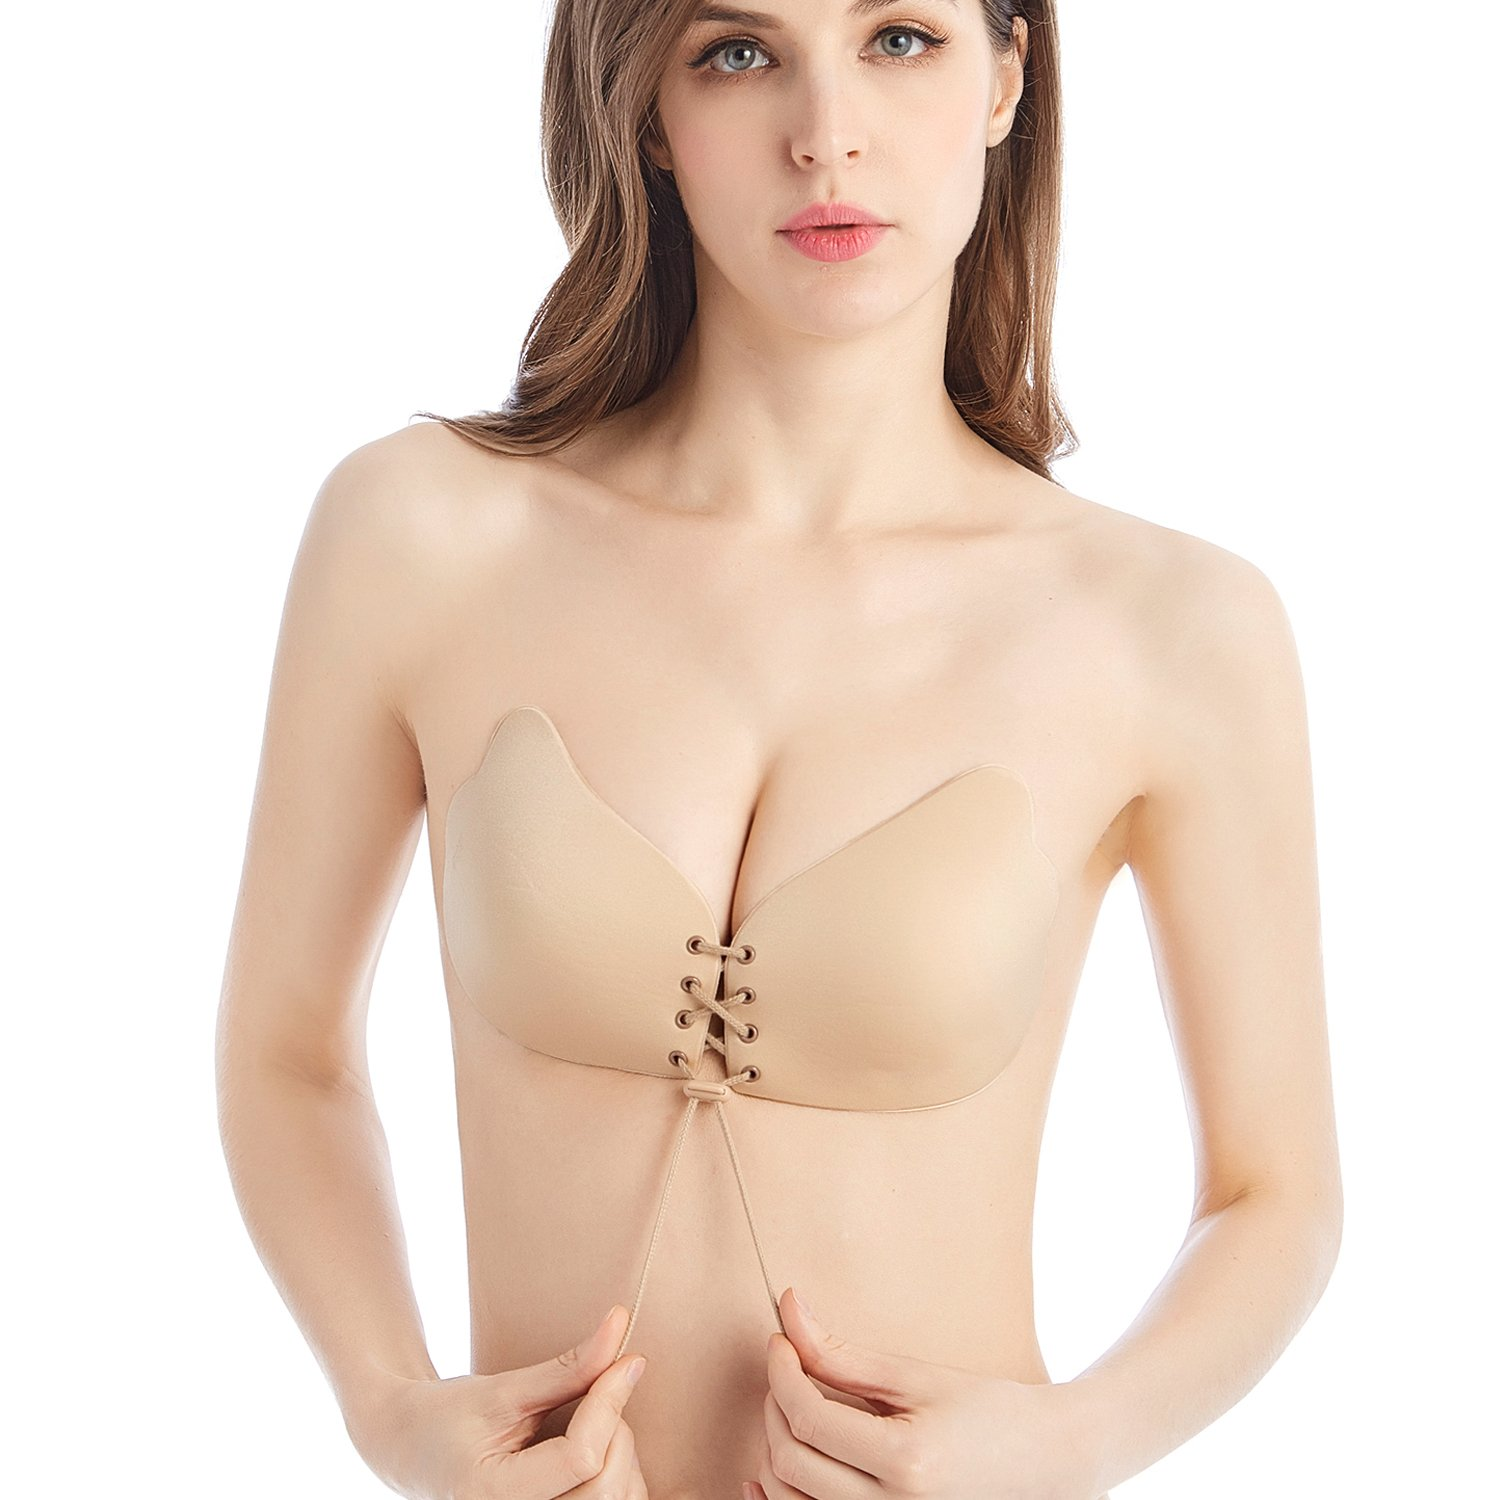 09bfe0f4e8 Top 10 wholesale 40b Push Up Bra - Chinabrands.com